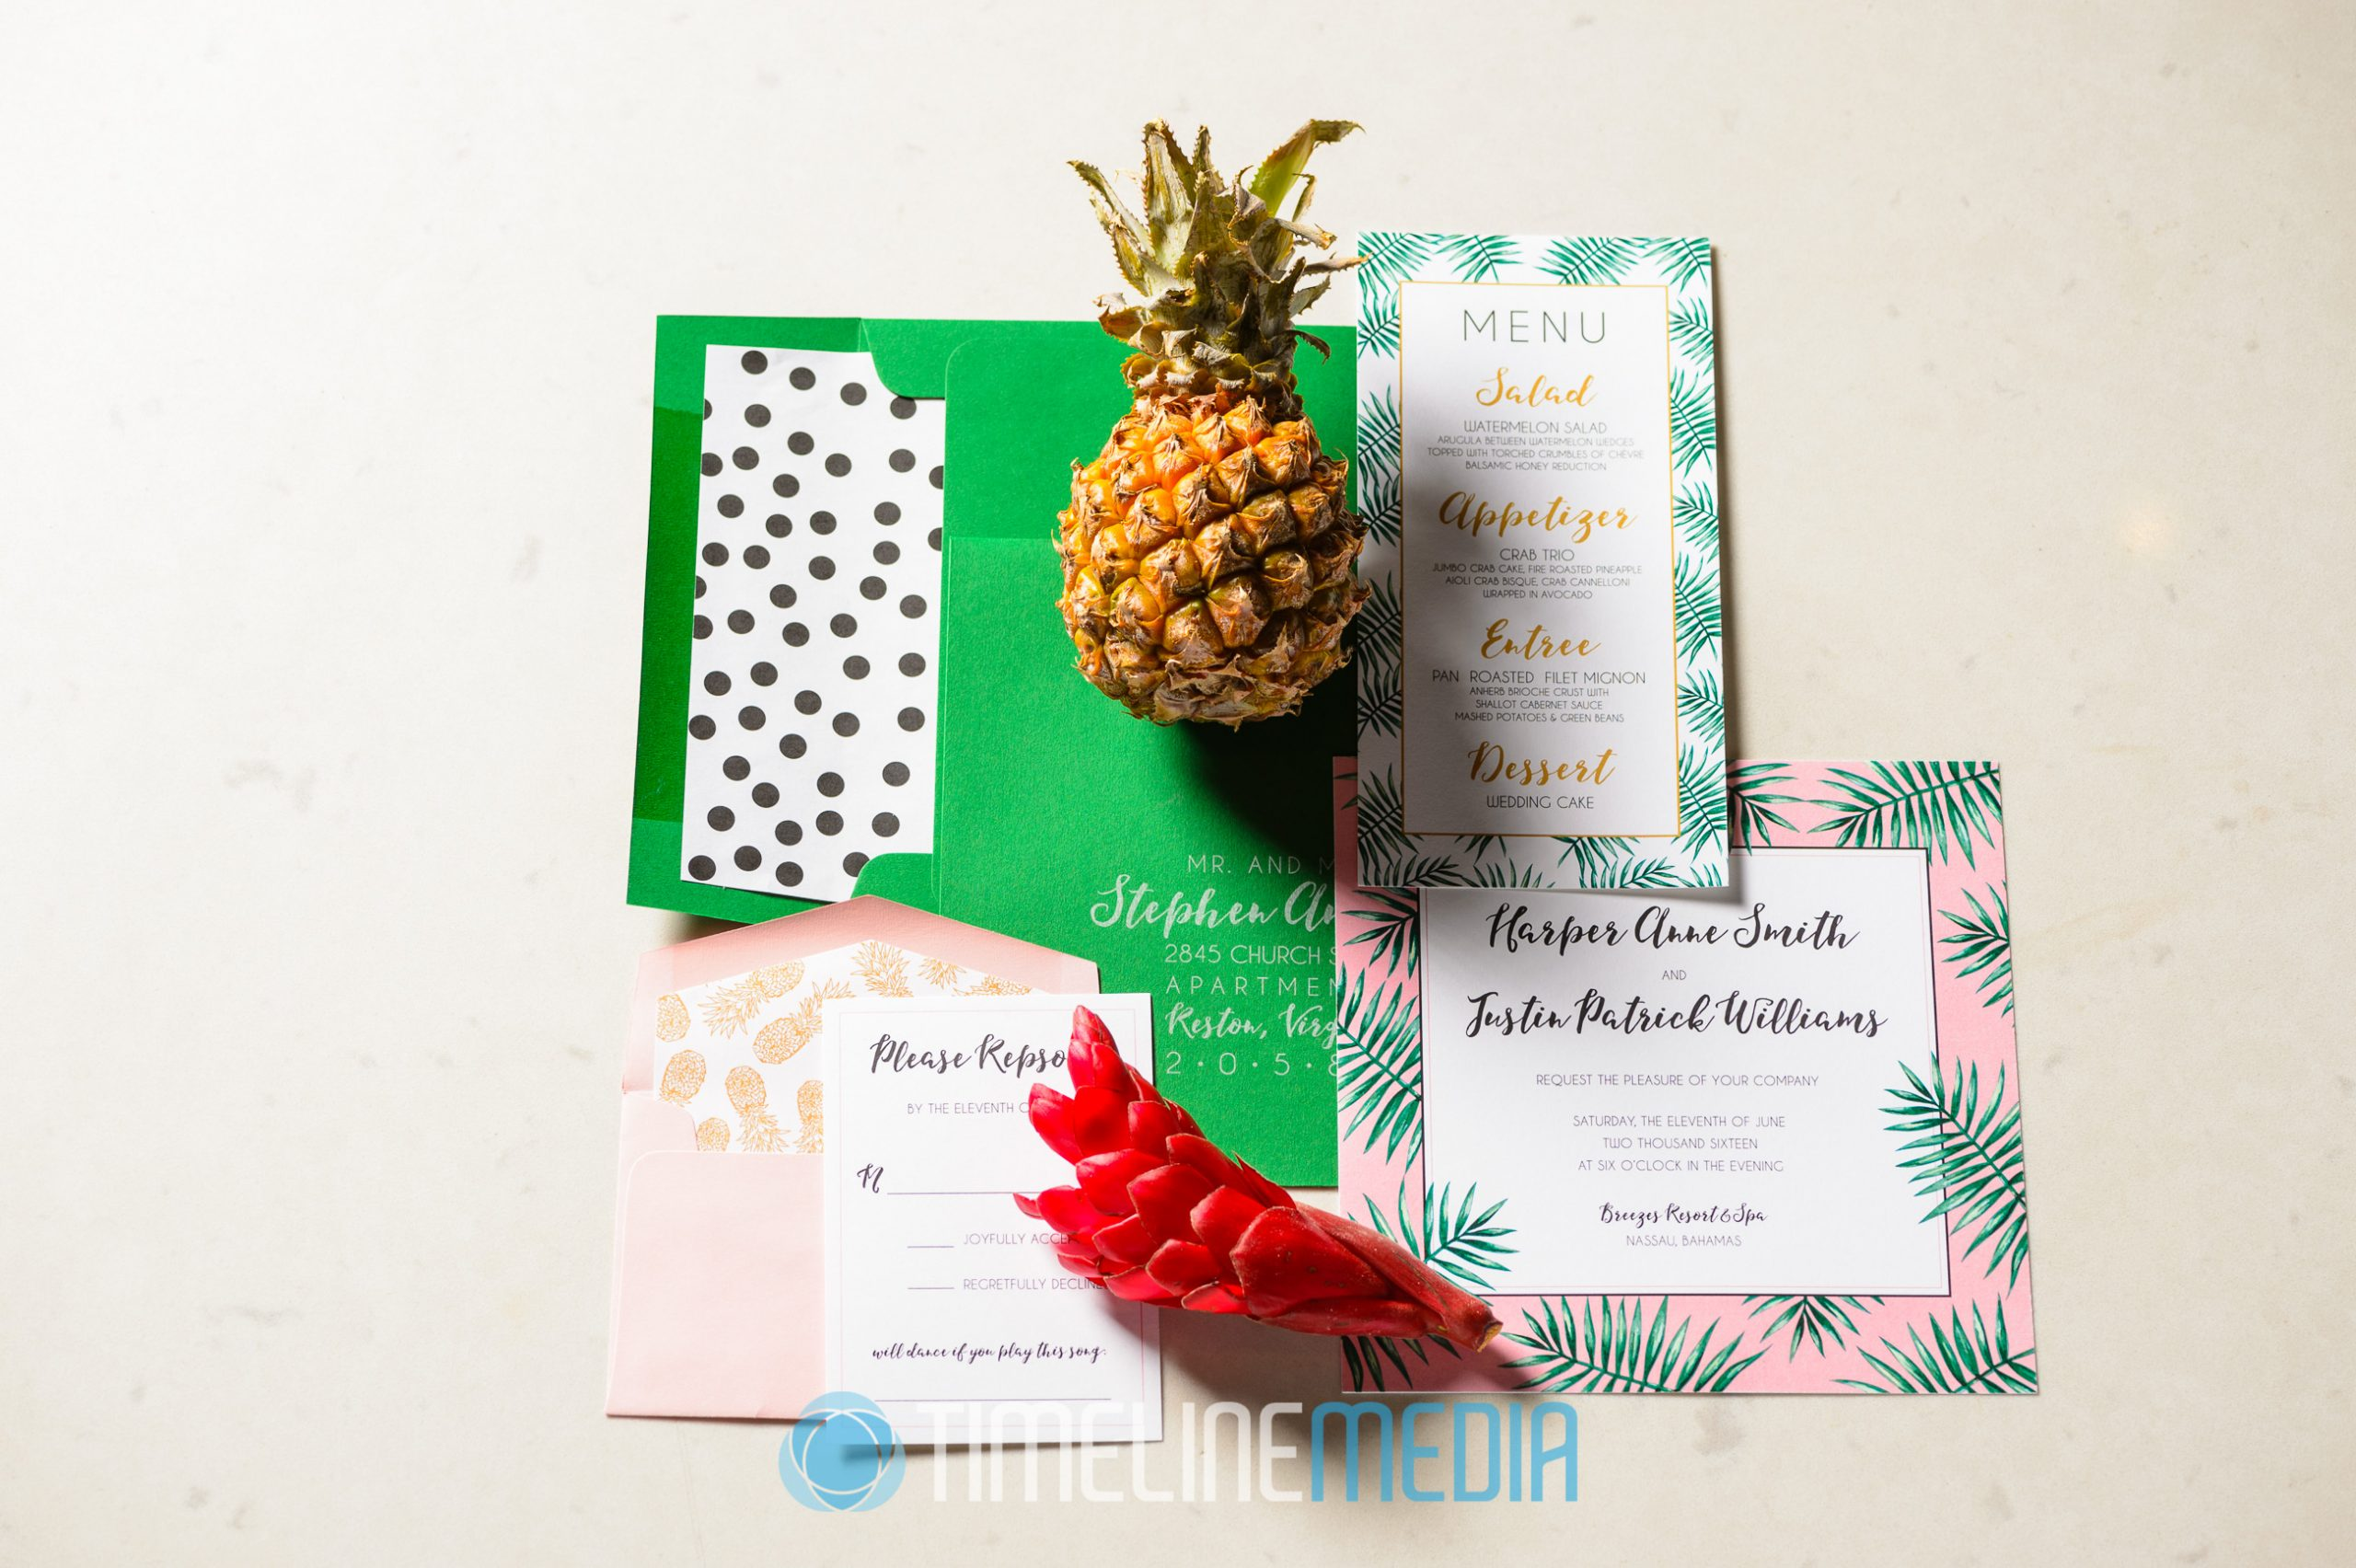 Wedding Invitation - Andrew Roby Events style shoot ©TimeLine Media